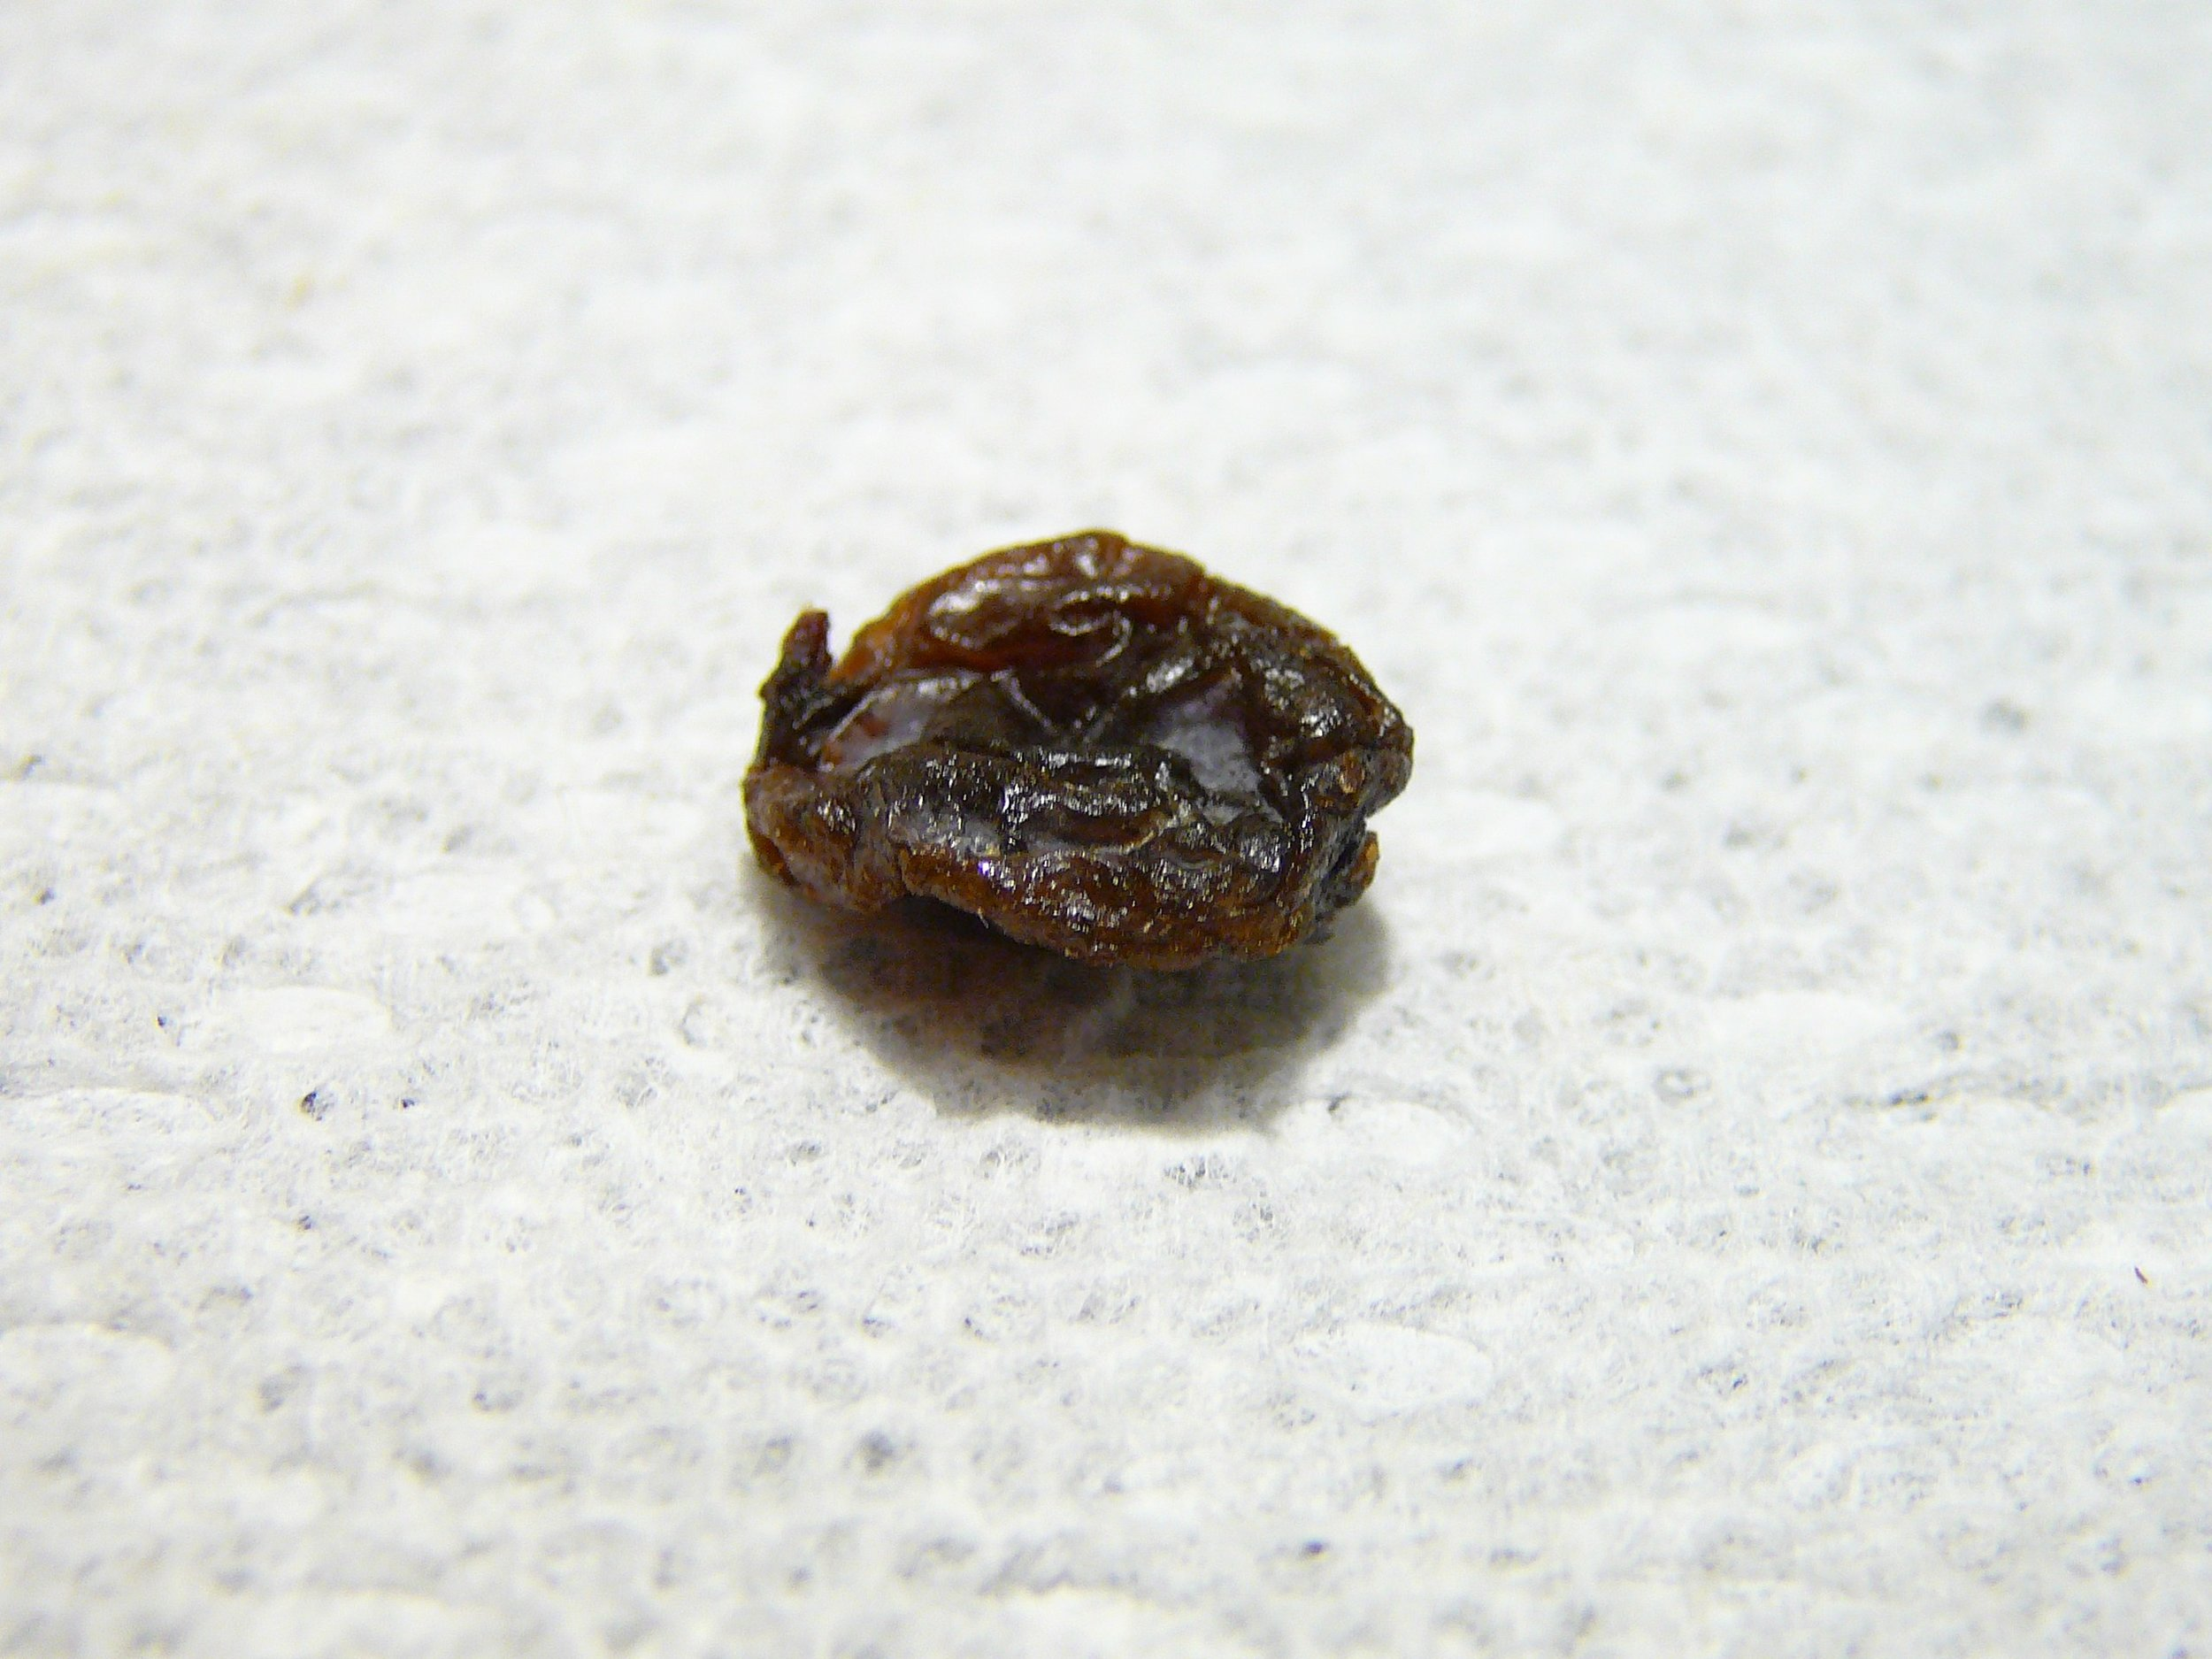 Mindful eating exercise: contemplate the raisin.